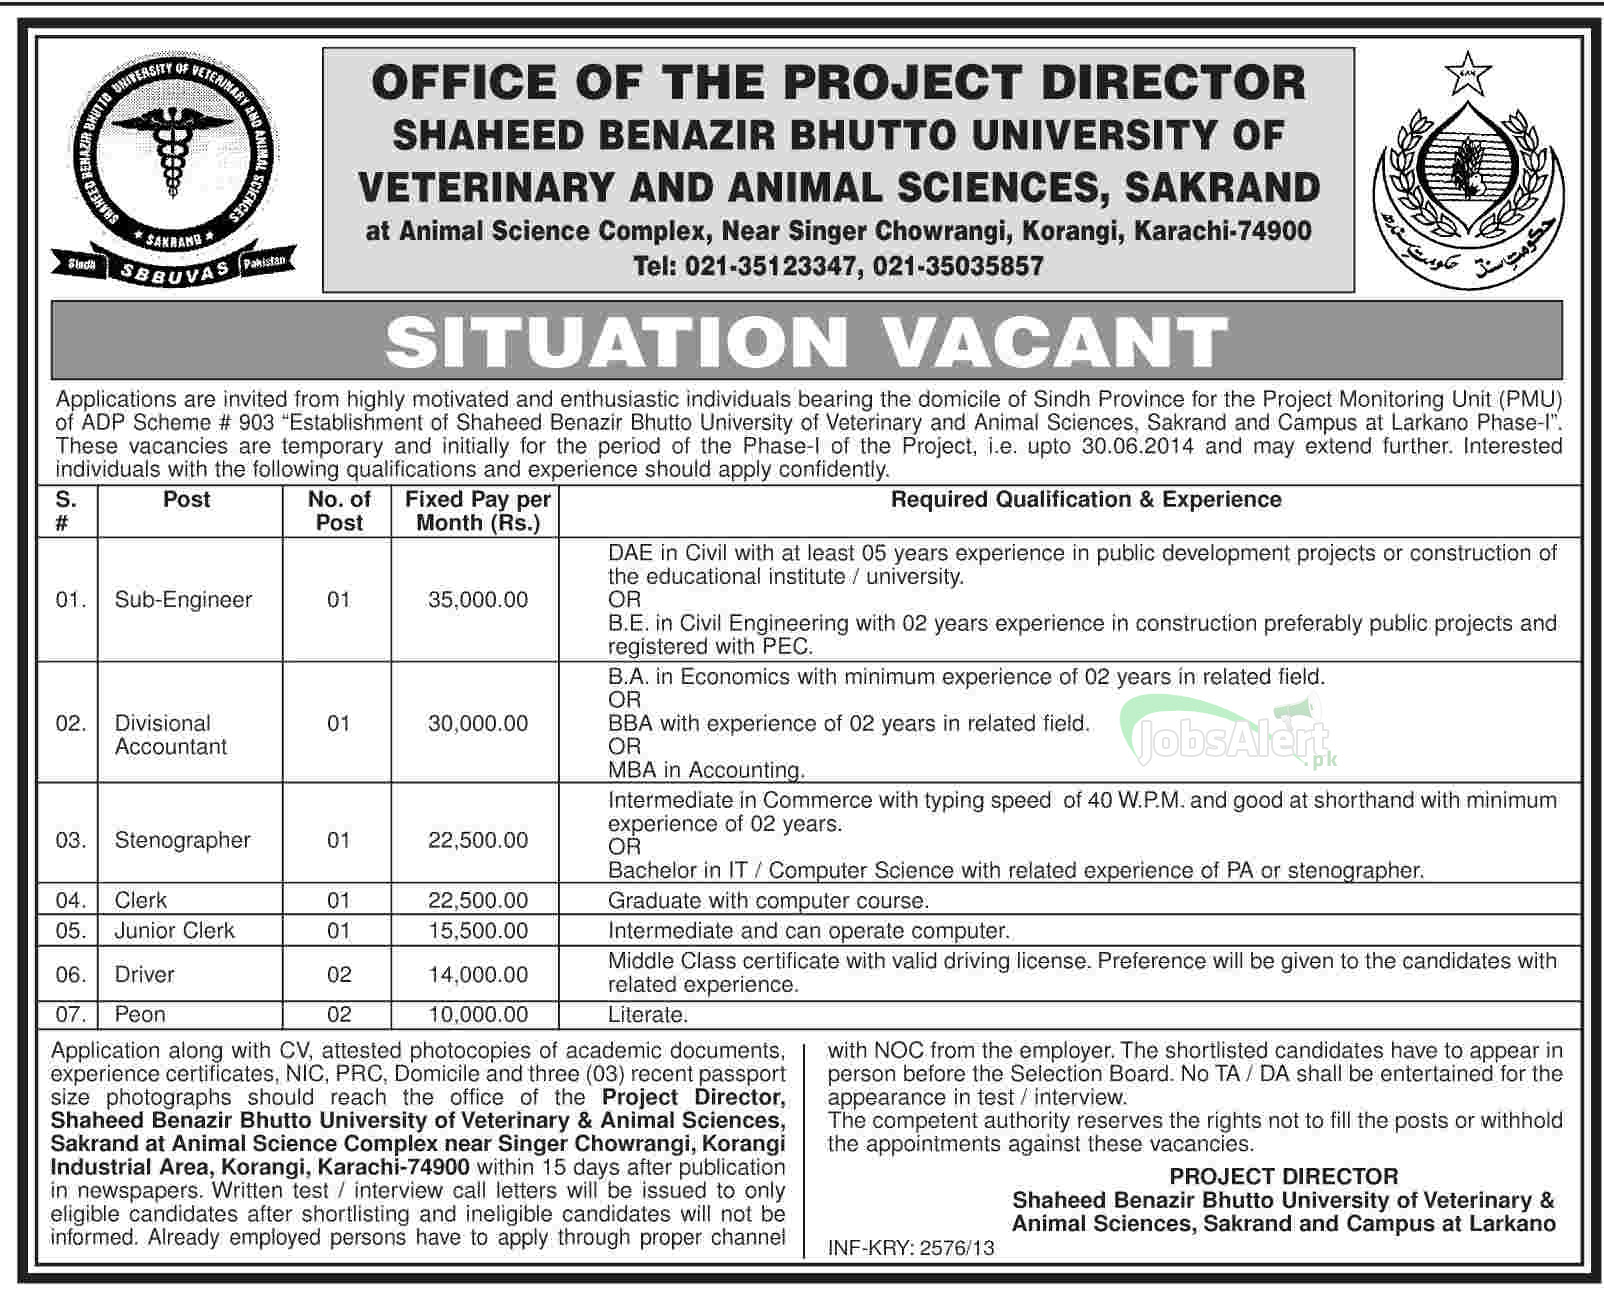 Jobs in Shaheed Benazir Bhutto University of Veterinary and Animal Sciences